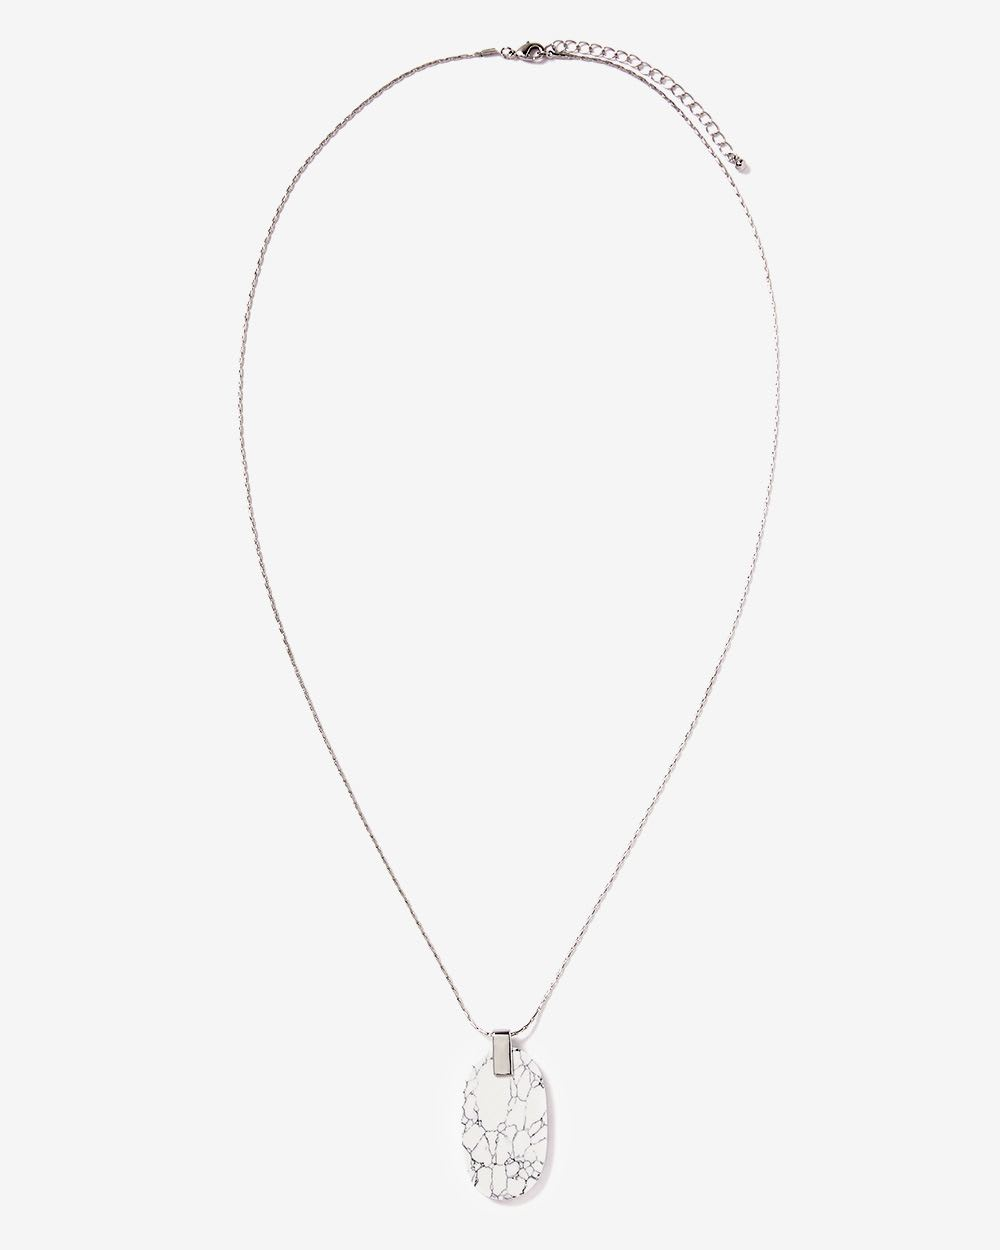 Marble Stop Pendant Necklace